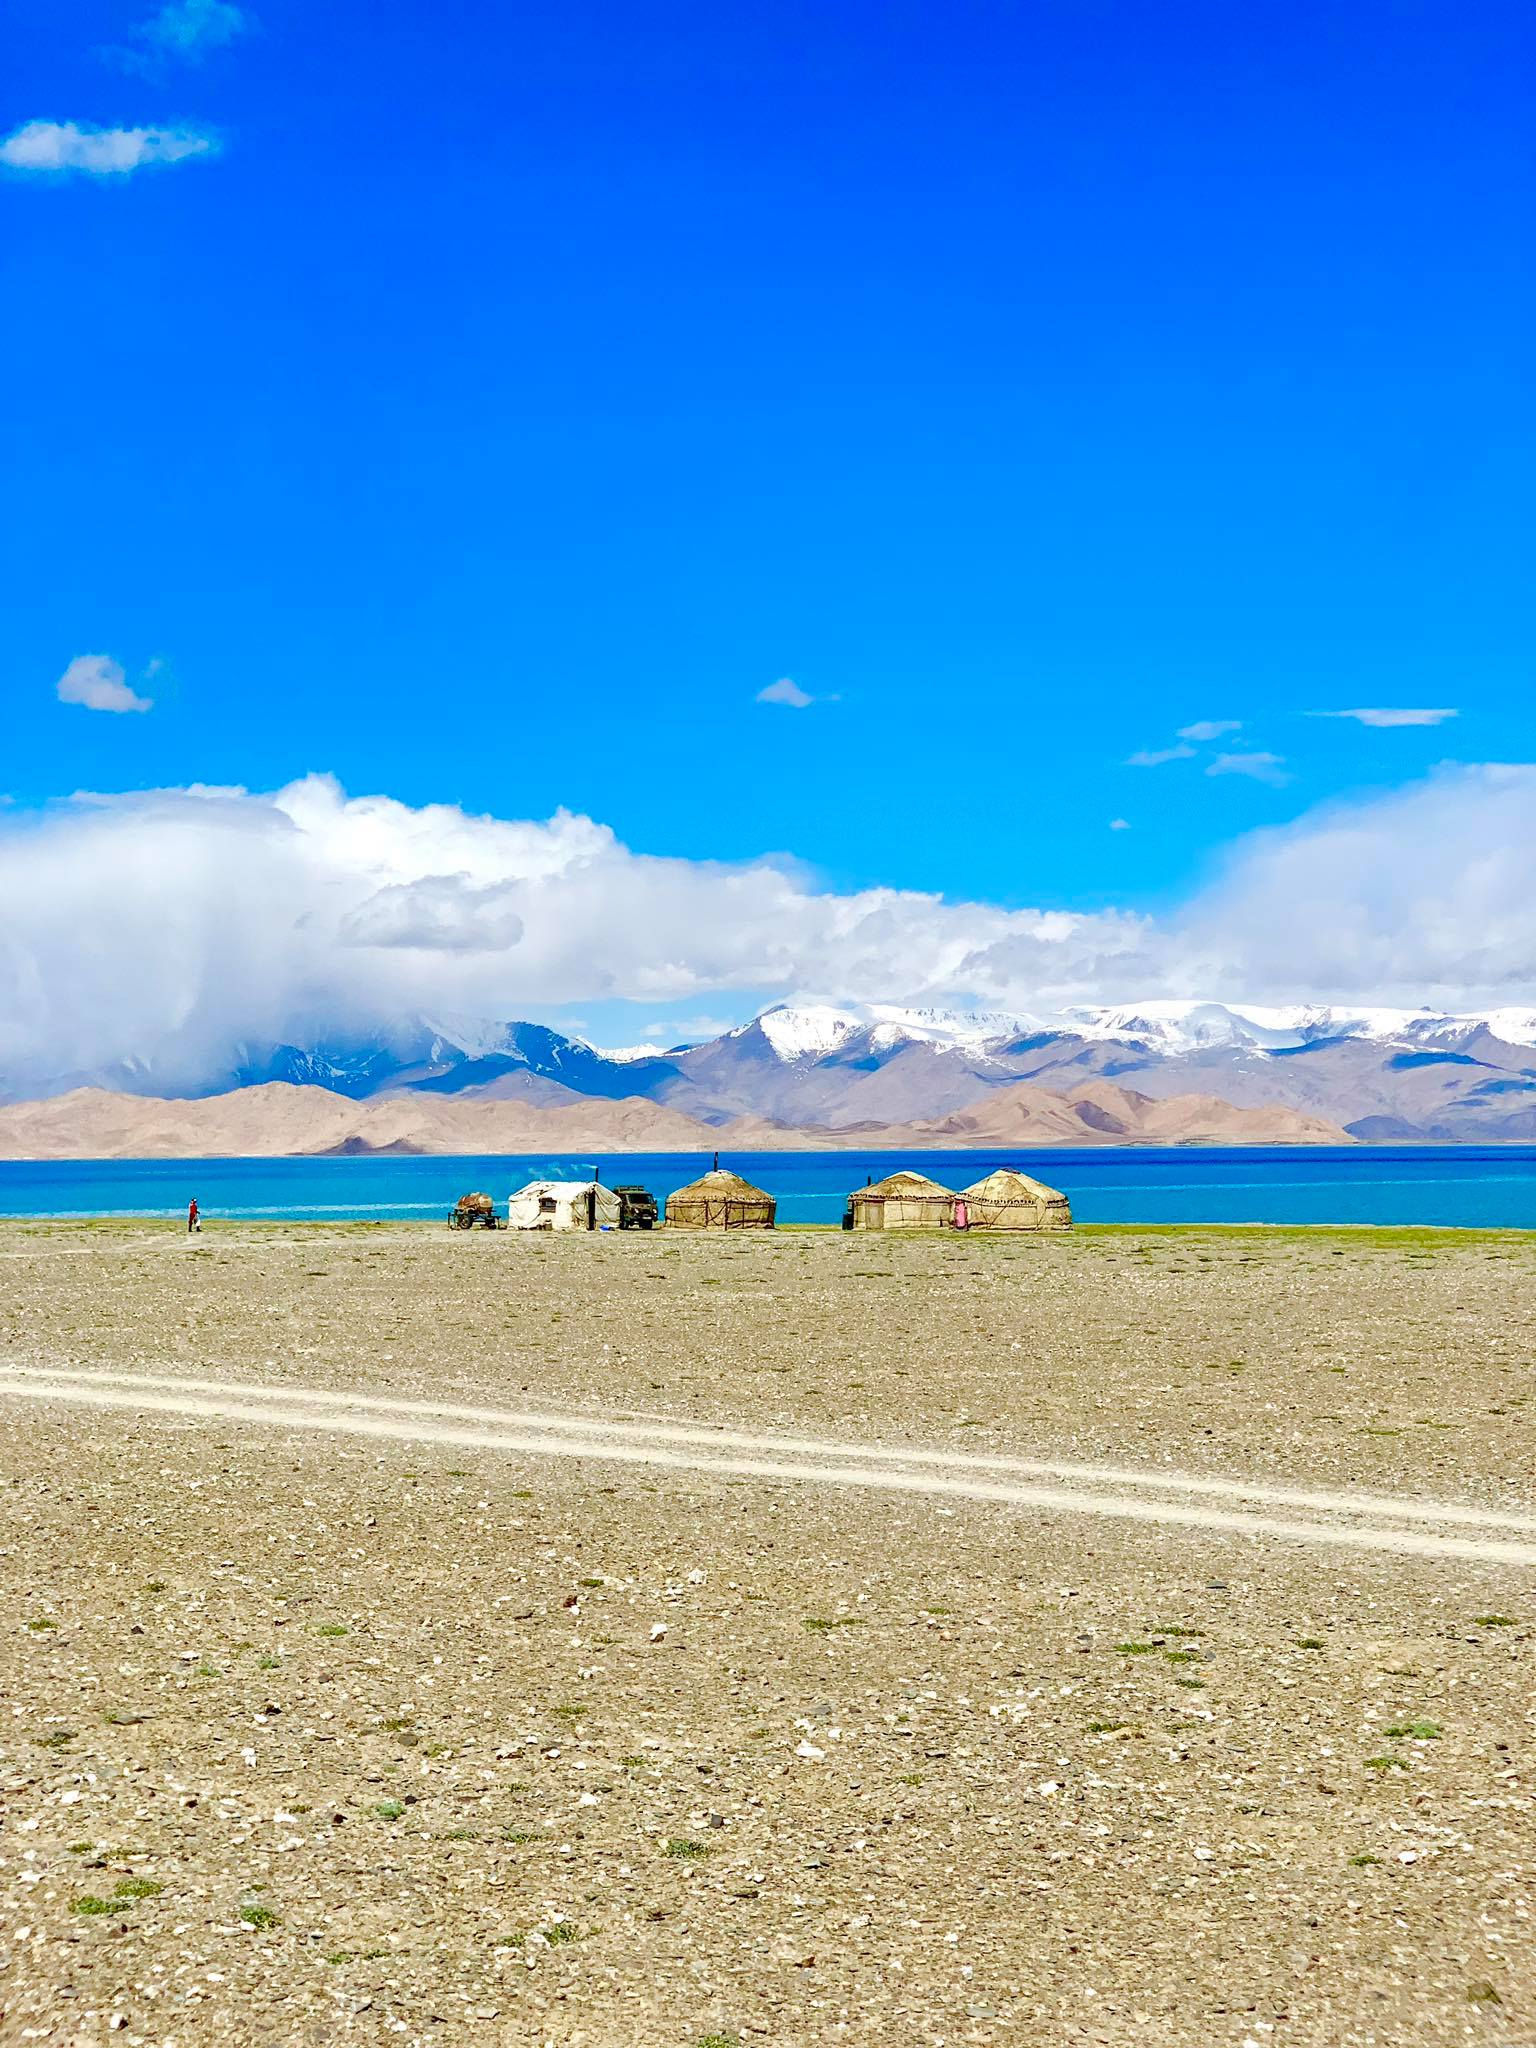 Kach Solo Travels in 2019 Last 8 days of Pamir Highway roadtrip with Paramount Journey3.jpg